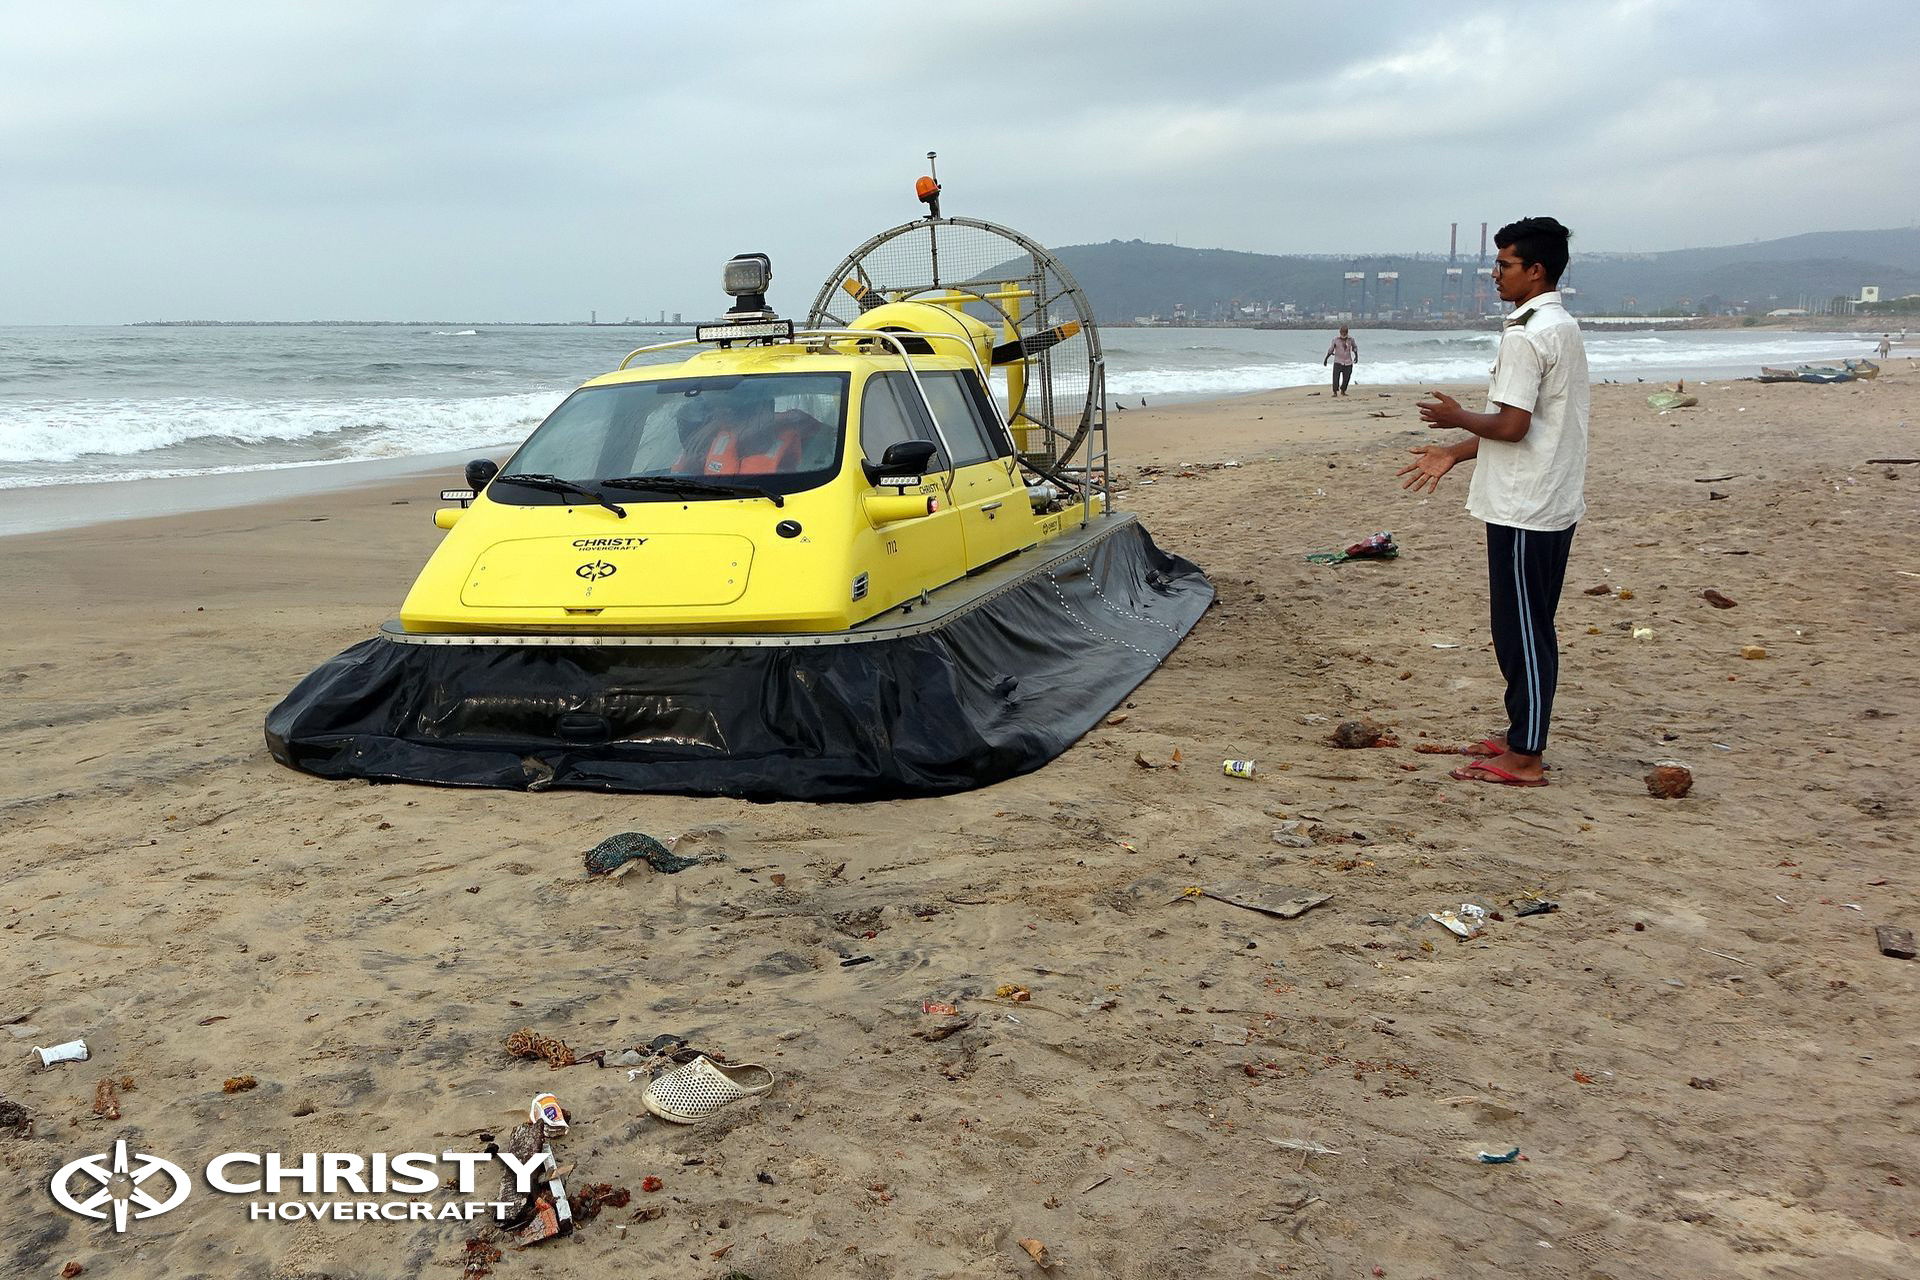 hovercraft-christy-5_7series-39.jpg | фото №26